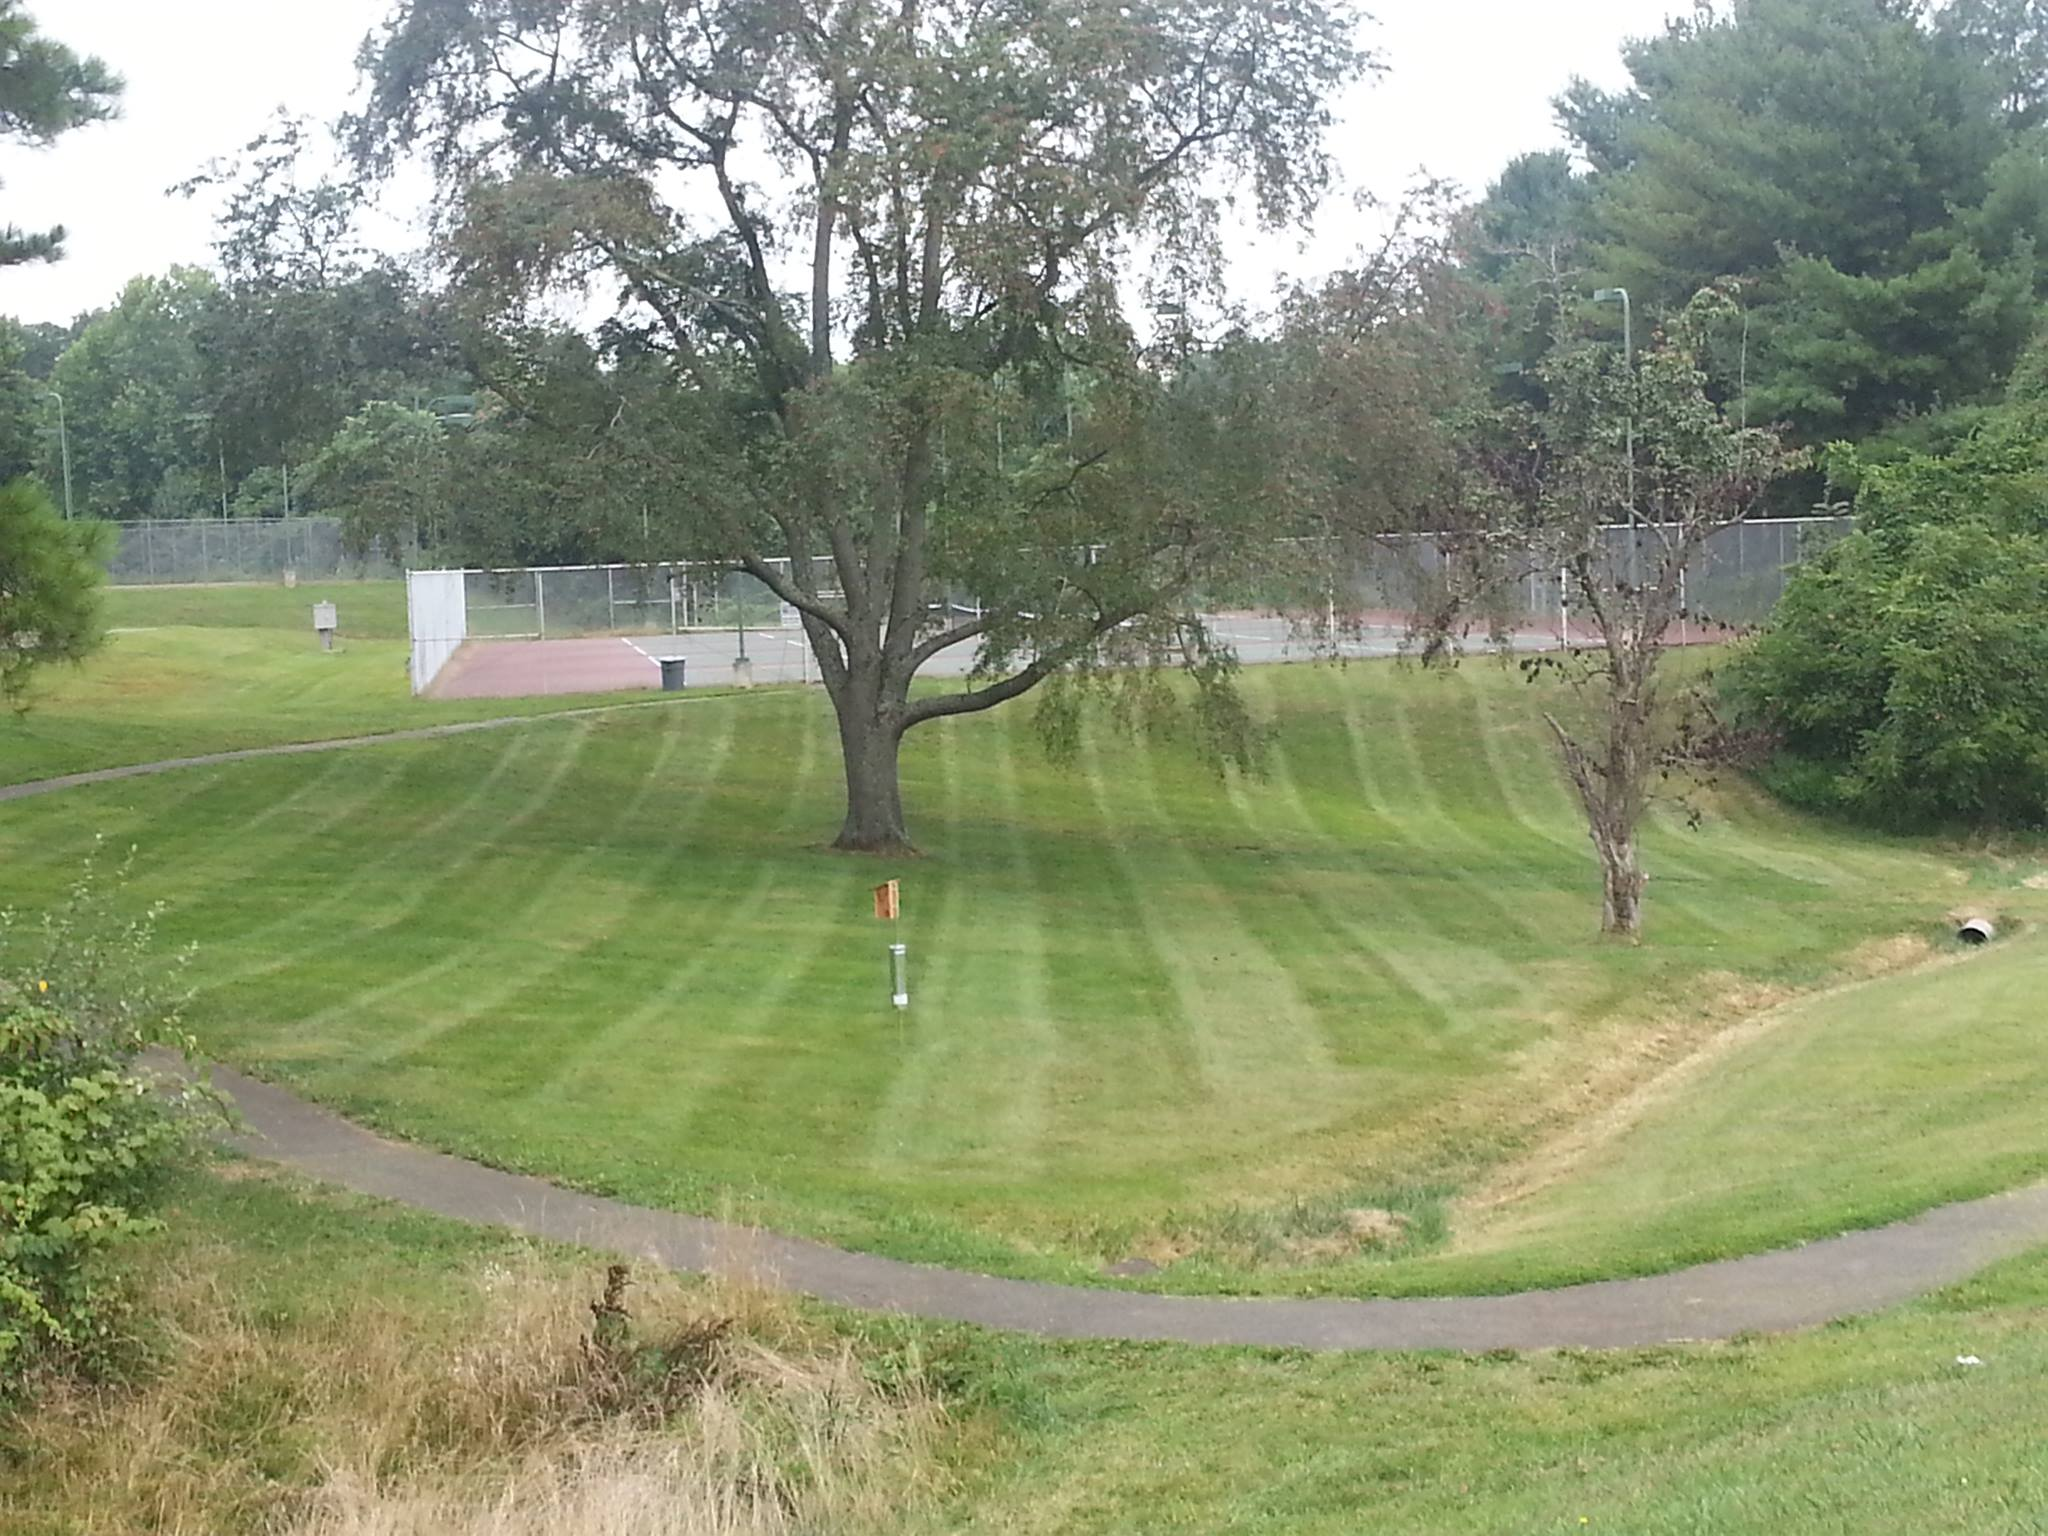 freshly mowed lawn in a park with tennis courts in the background